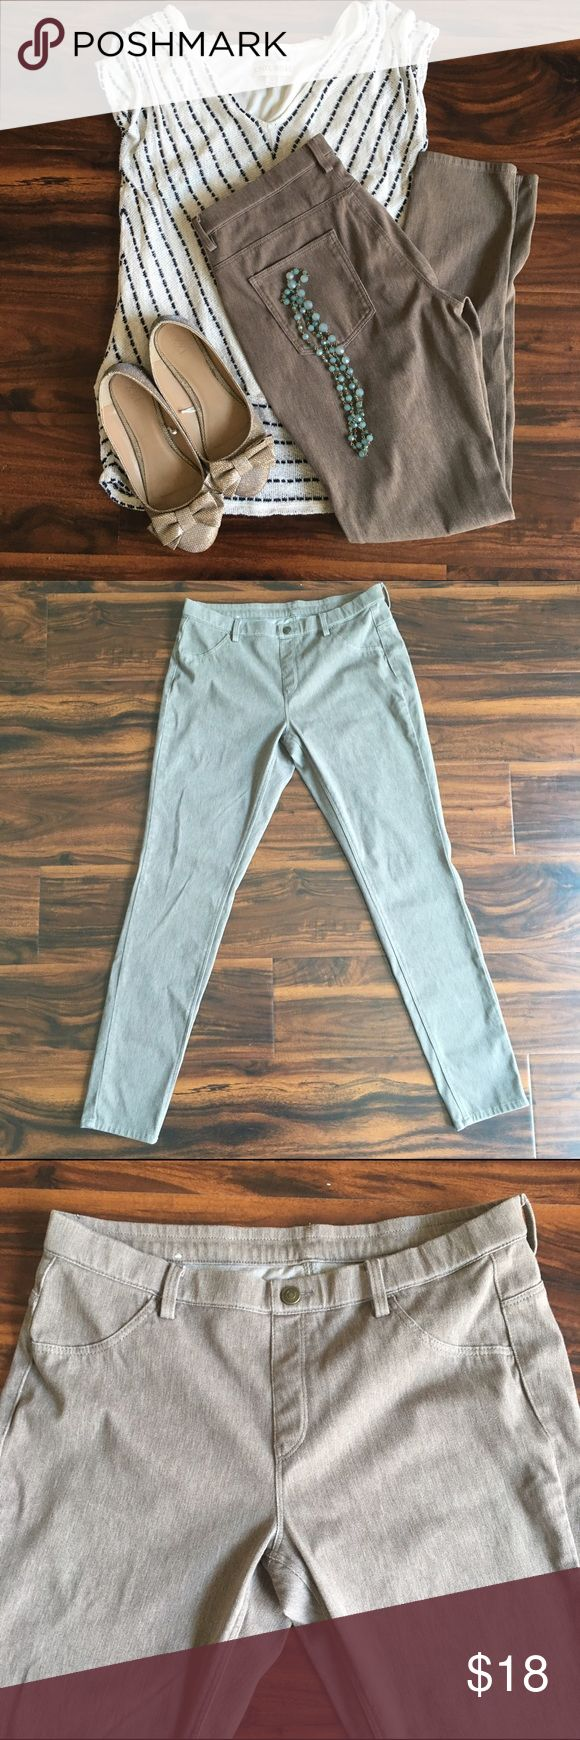 Tan UNIQLO Legging Pants Size Large Worn once. Jegging pants, size Large. Waist is for 30-32inches. Has pockets on backside. Smoke free home. UNIQLO Pants Skinny